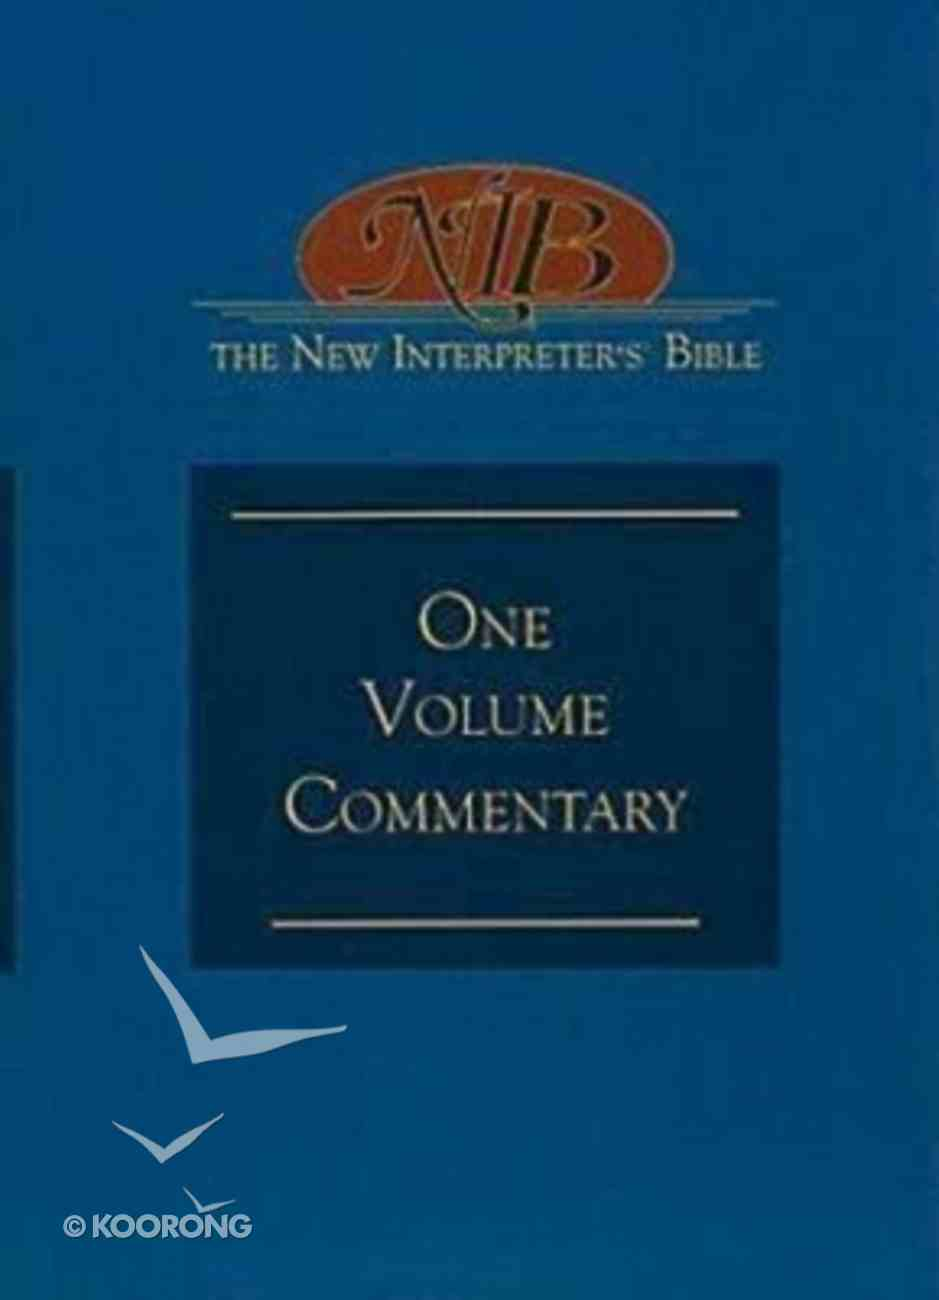 New Interpreters Bible: One Volume Commentary (New Interpreters Bible Commentary Series) Hardback